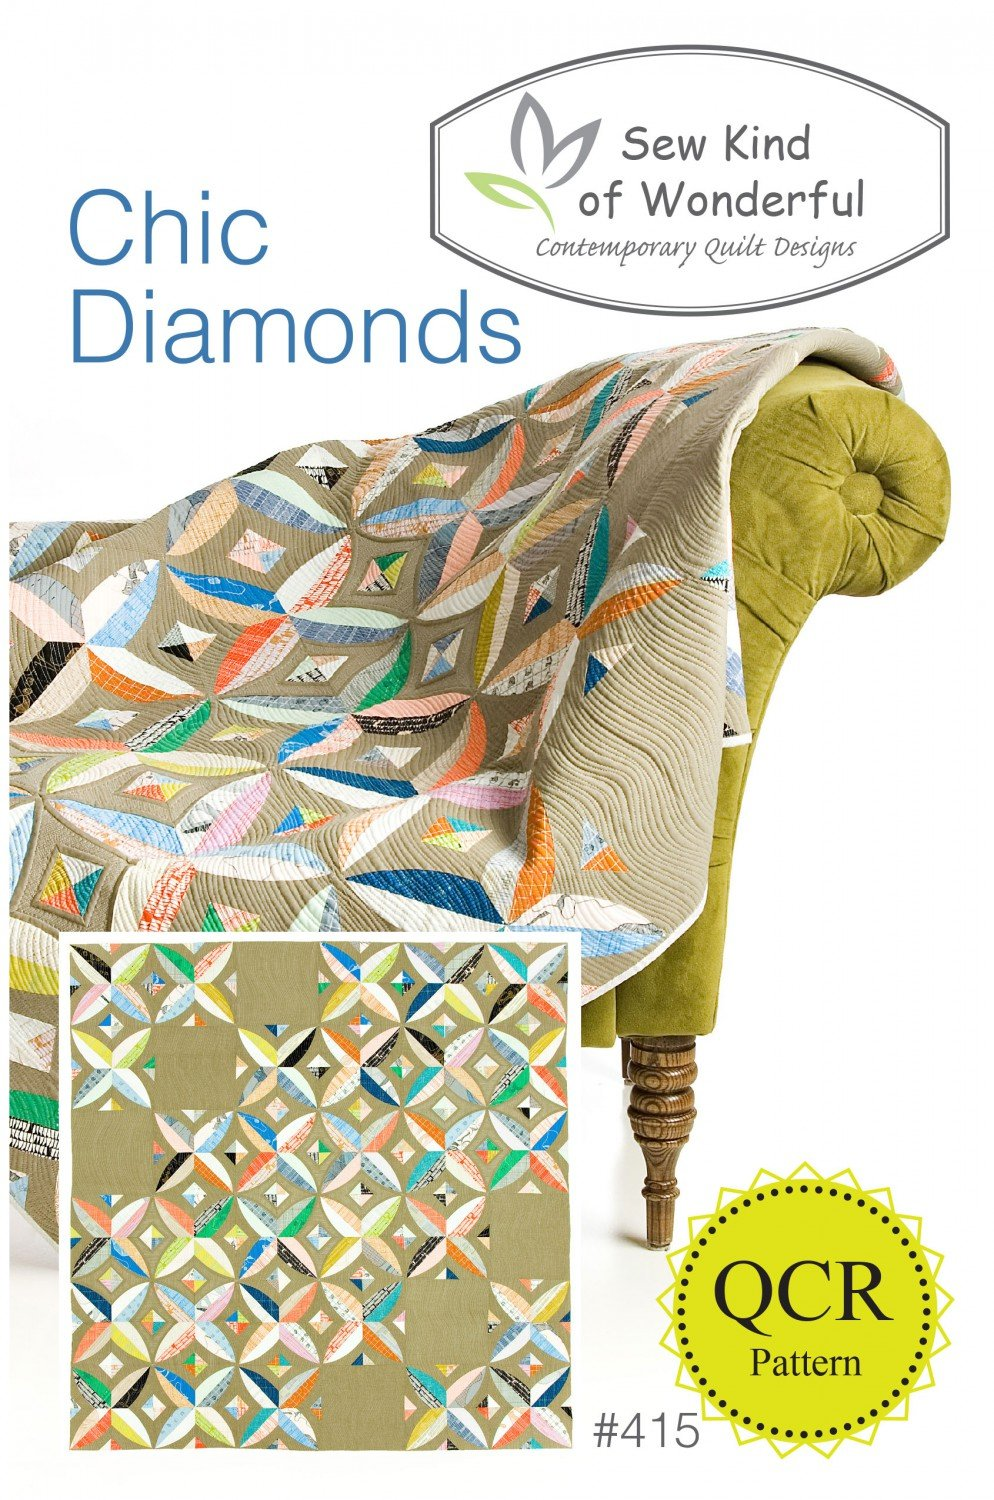 Chic Diamonds by Sew Kind of Wonderful